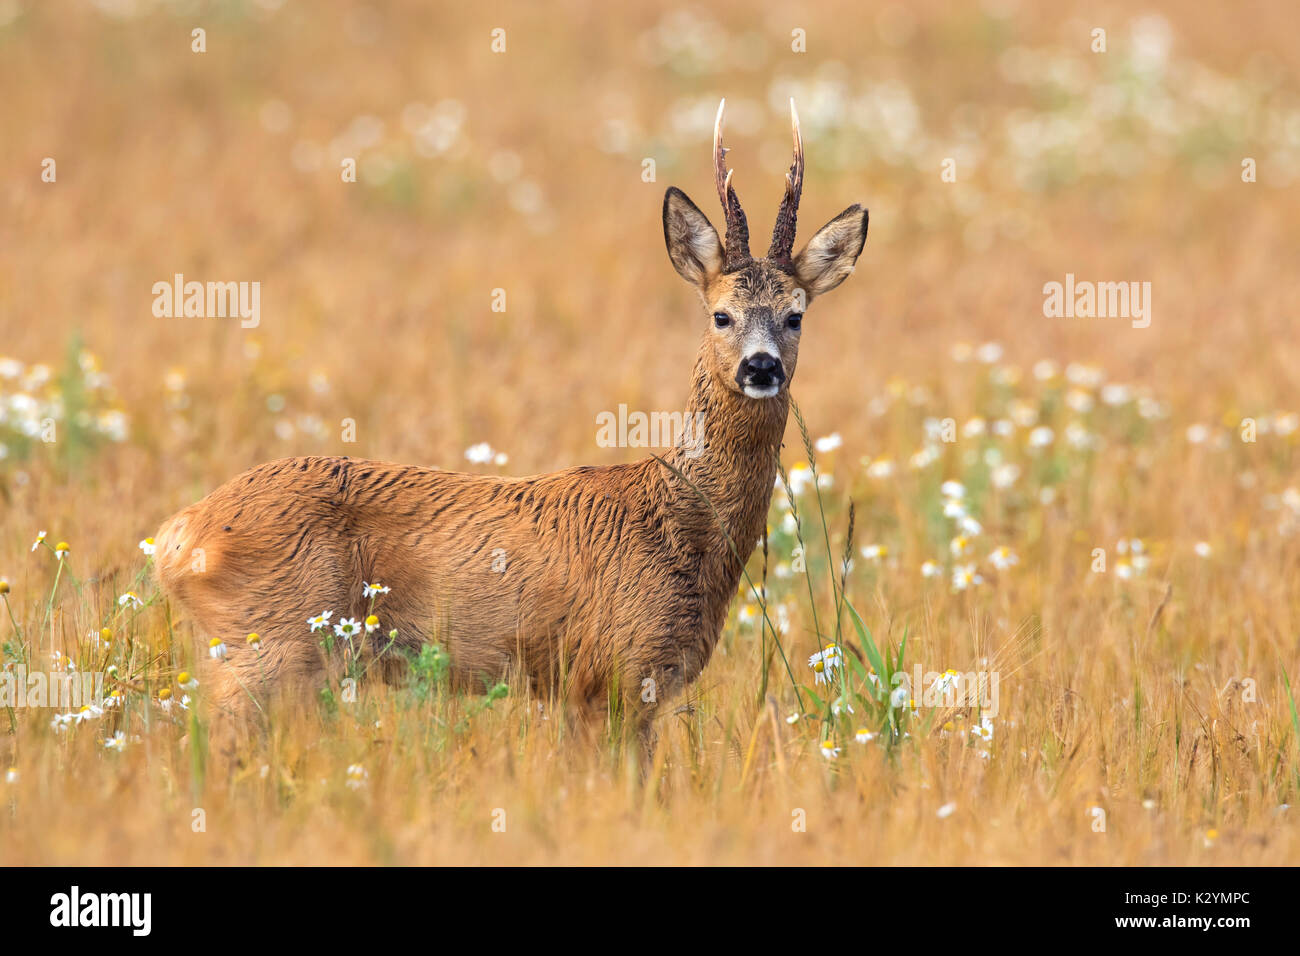 European roe deer (Capreolus capreolus) buck foraging in cereal field in summer - Stock Image